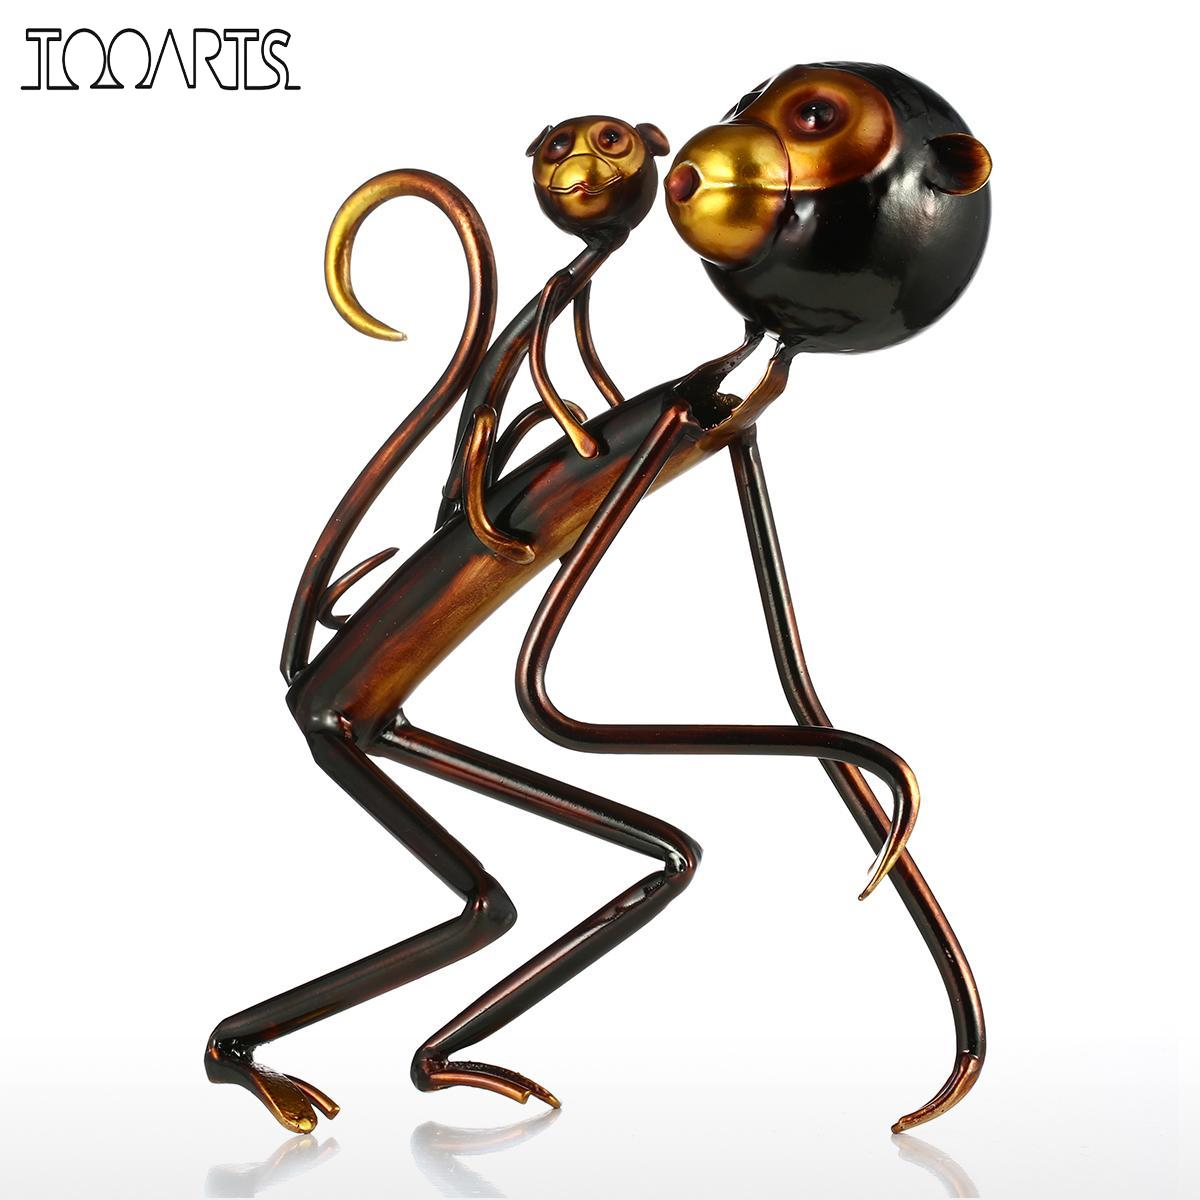 Tooarts Monkey Carrys Baby Metal Sculpture Iron Sculpture Abstract Sculpture Modern Sculpture Home Decoration Ornament GiftTooarts Monkey Carrys Baby Metal Sculpture Iron Sculpture Abstract Sculpture Modern Sculpture Home Decoration Ornament Gift